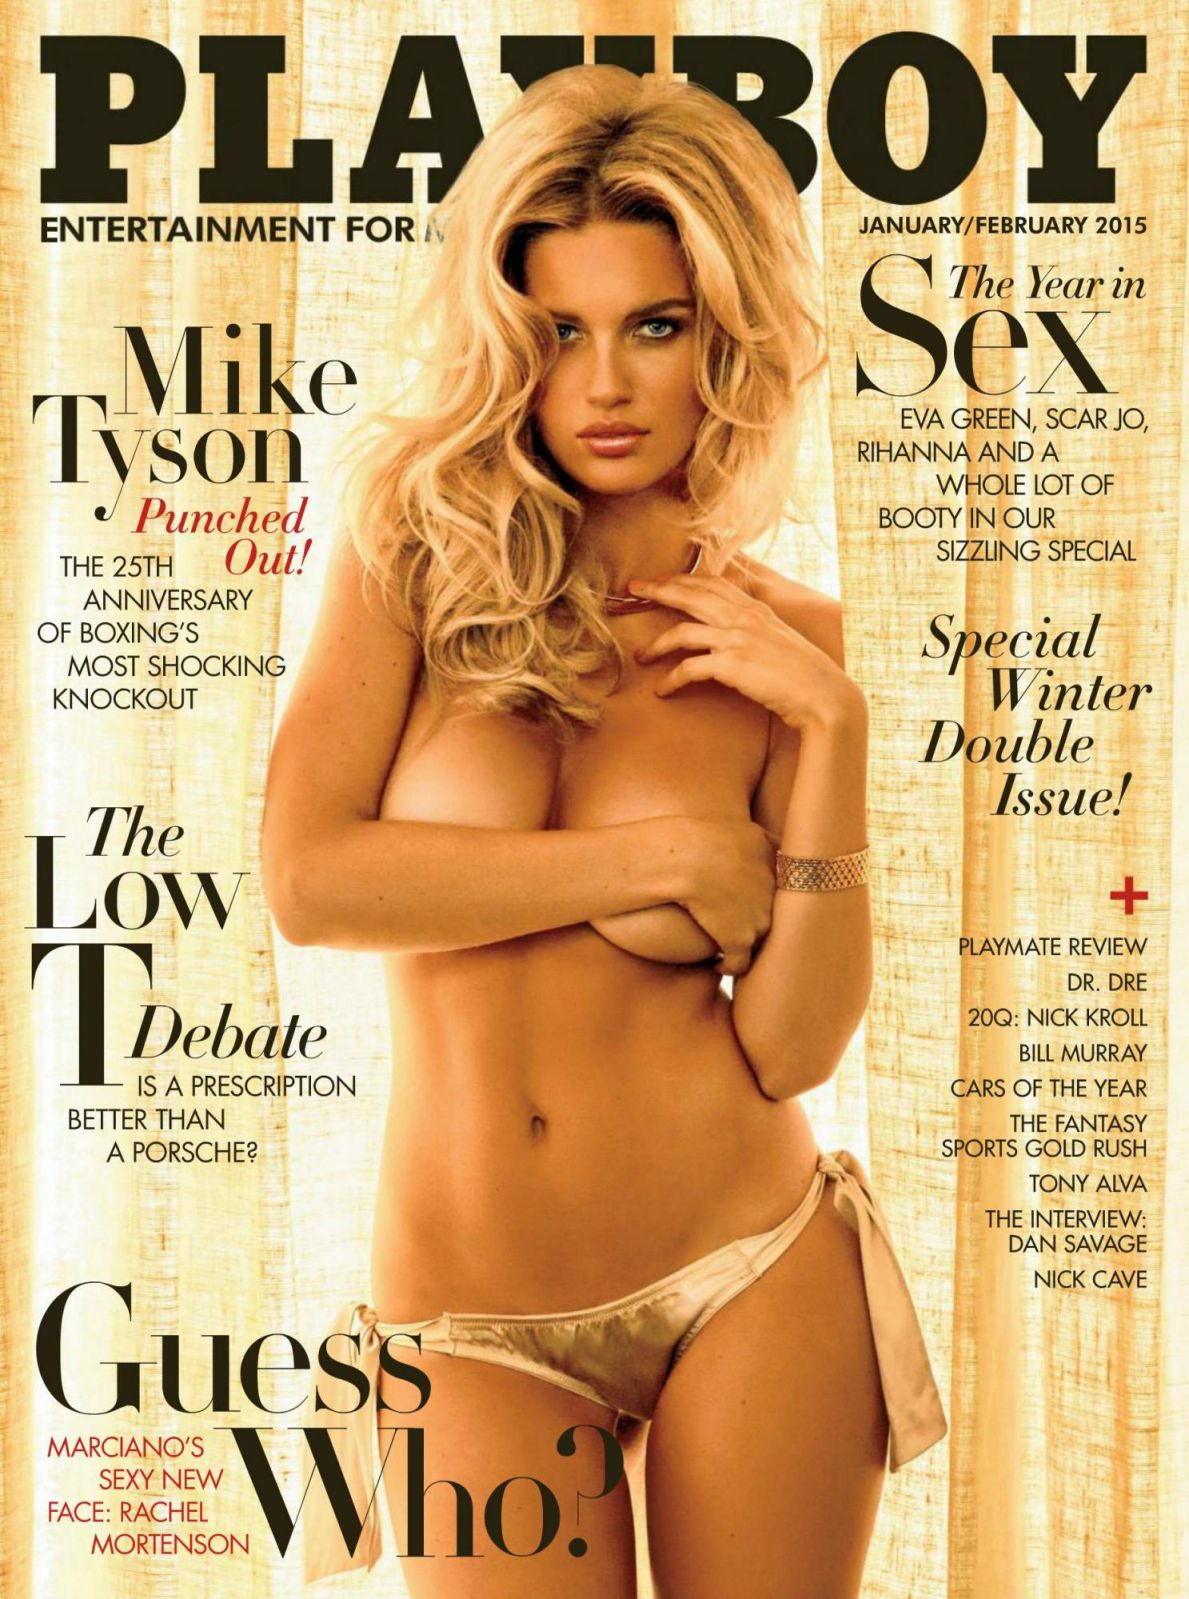 Speaking, opinion, playboy rachel mortenson nude for that interfere